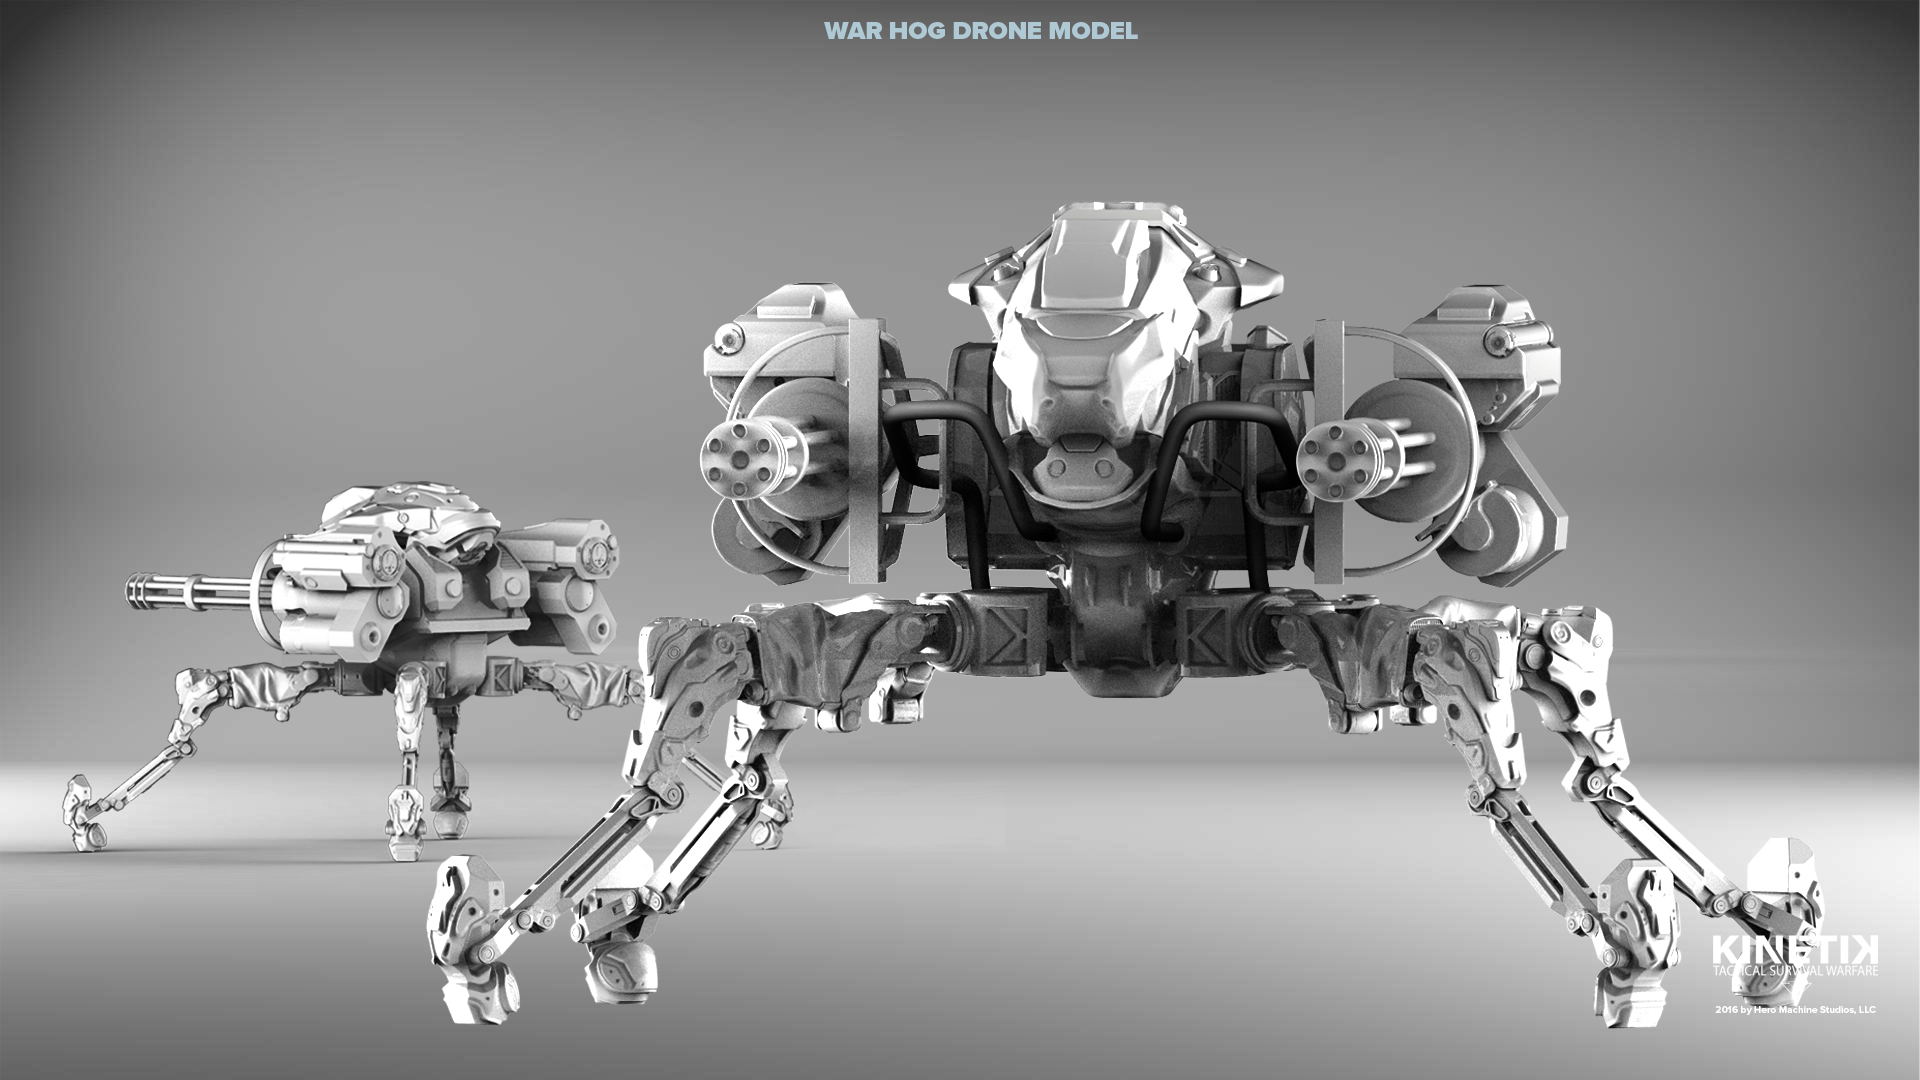 screen015_zbrush-concept-art-kinetik-drone-model